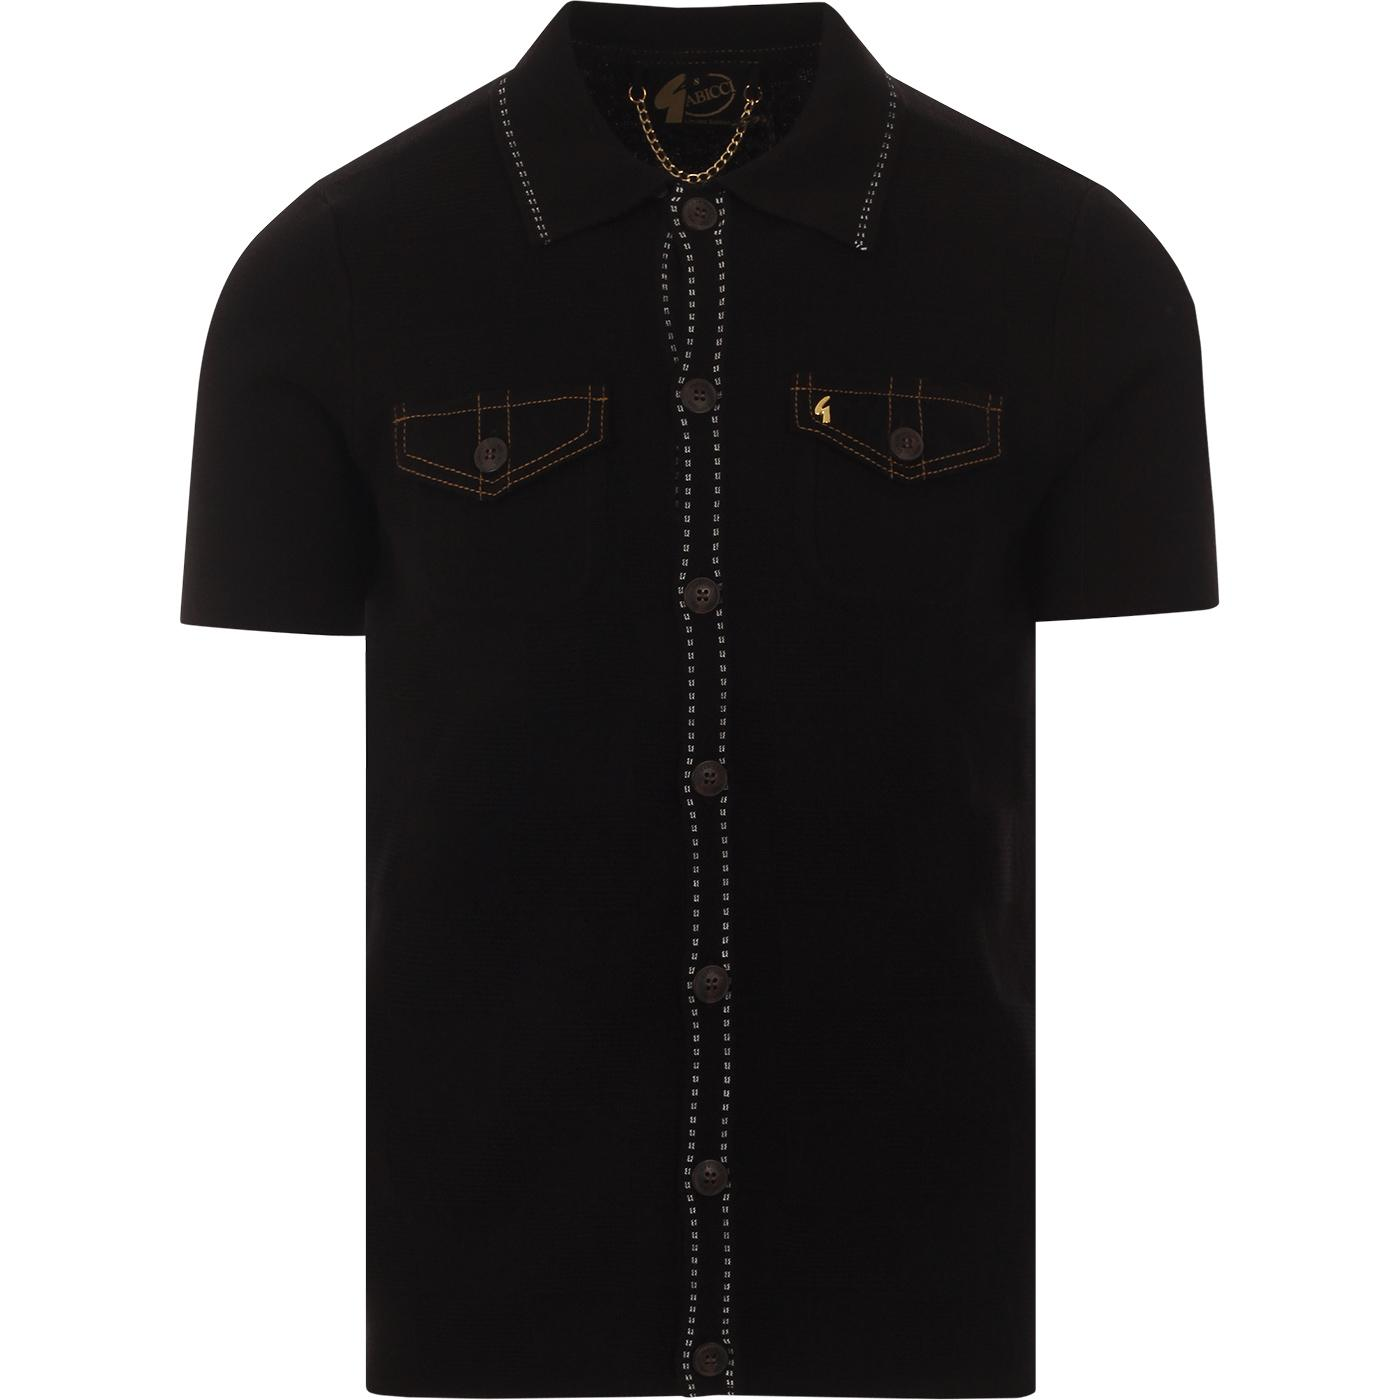 Buckler GABICCI VINTAGE Ltd Edition Polo Top BLACK